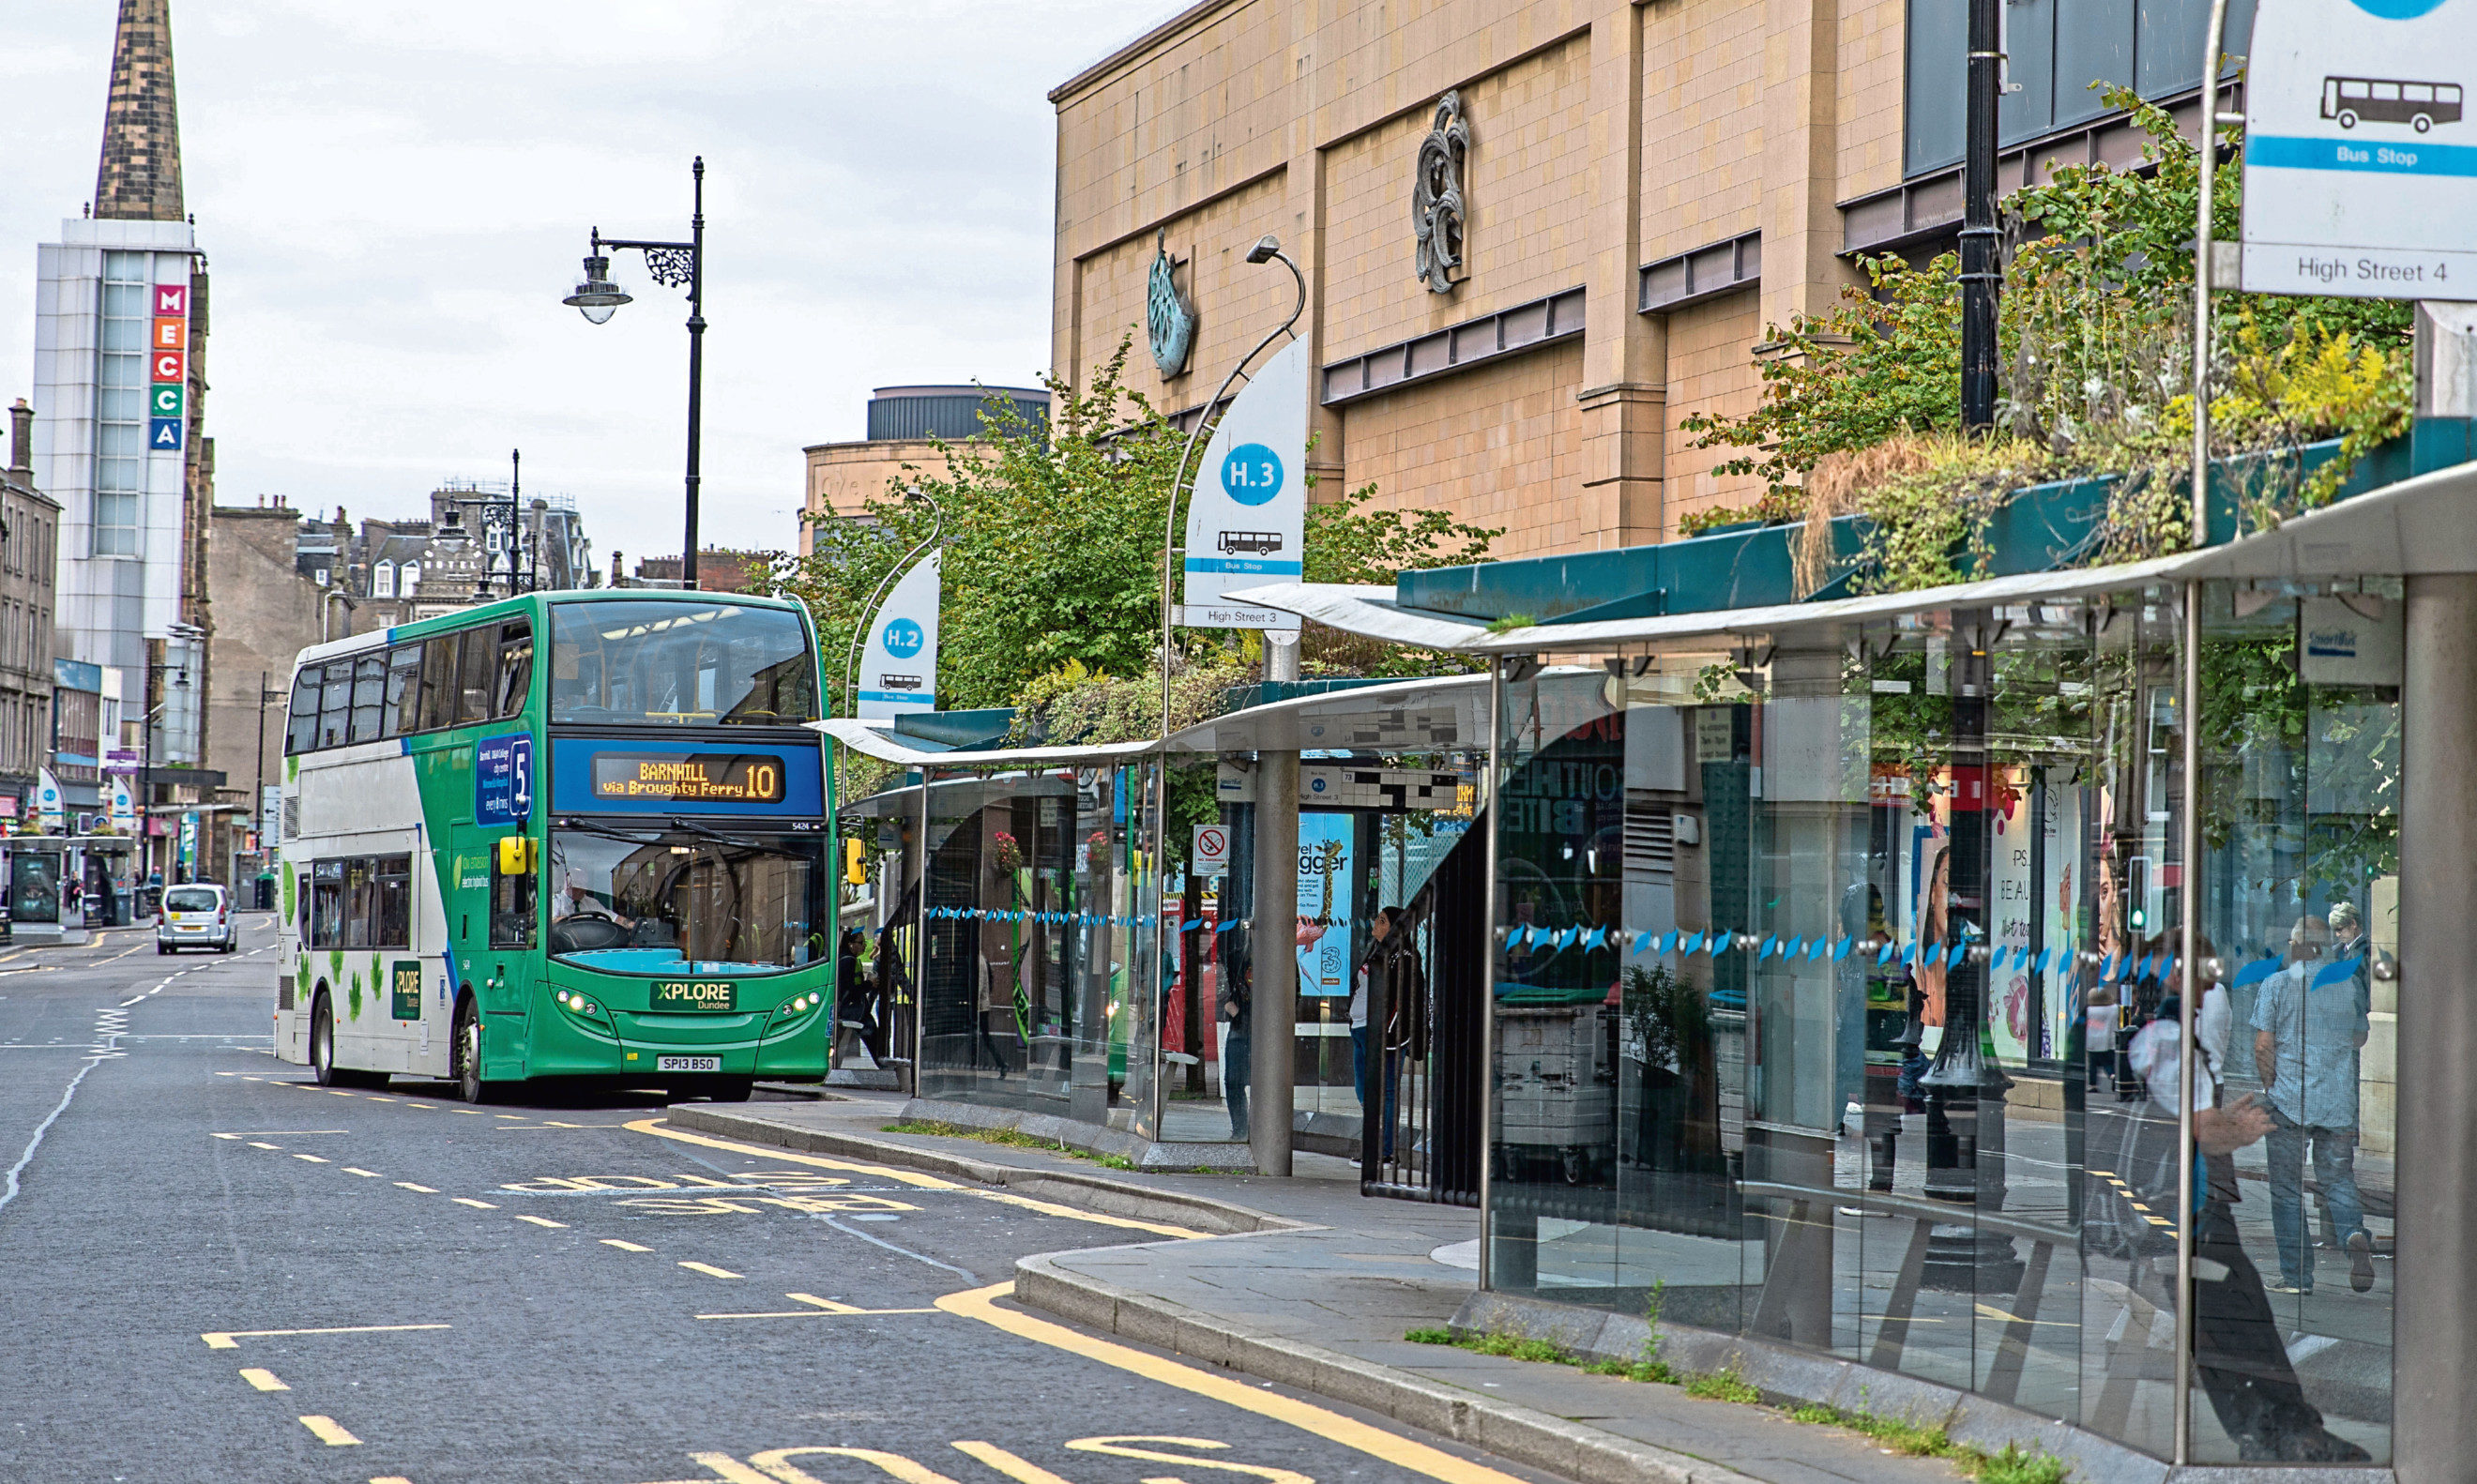 The number 10 bus arriving at the City Centre had to be cancelled.